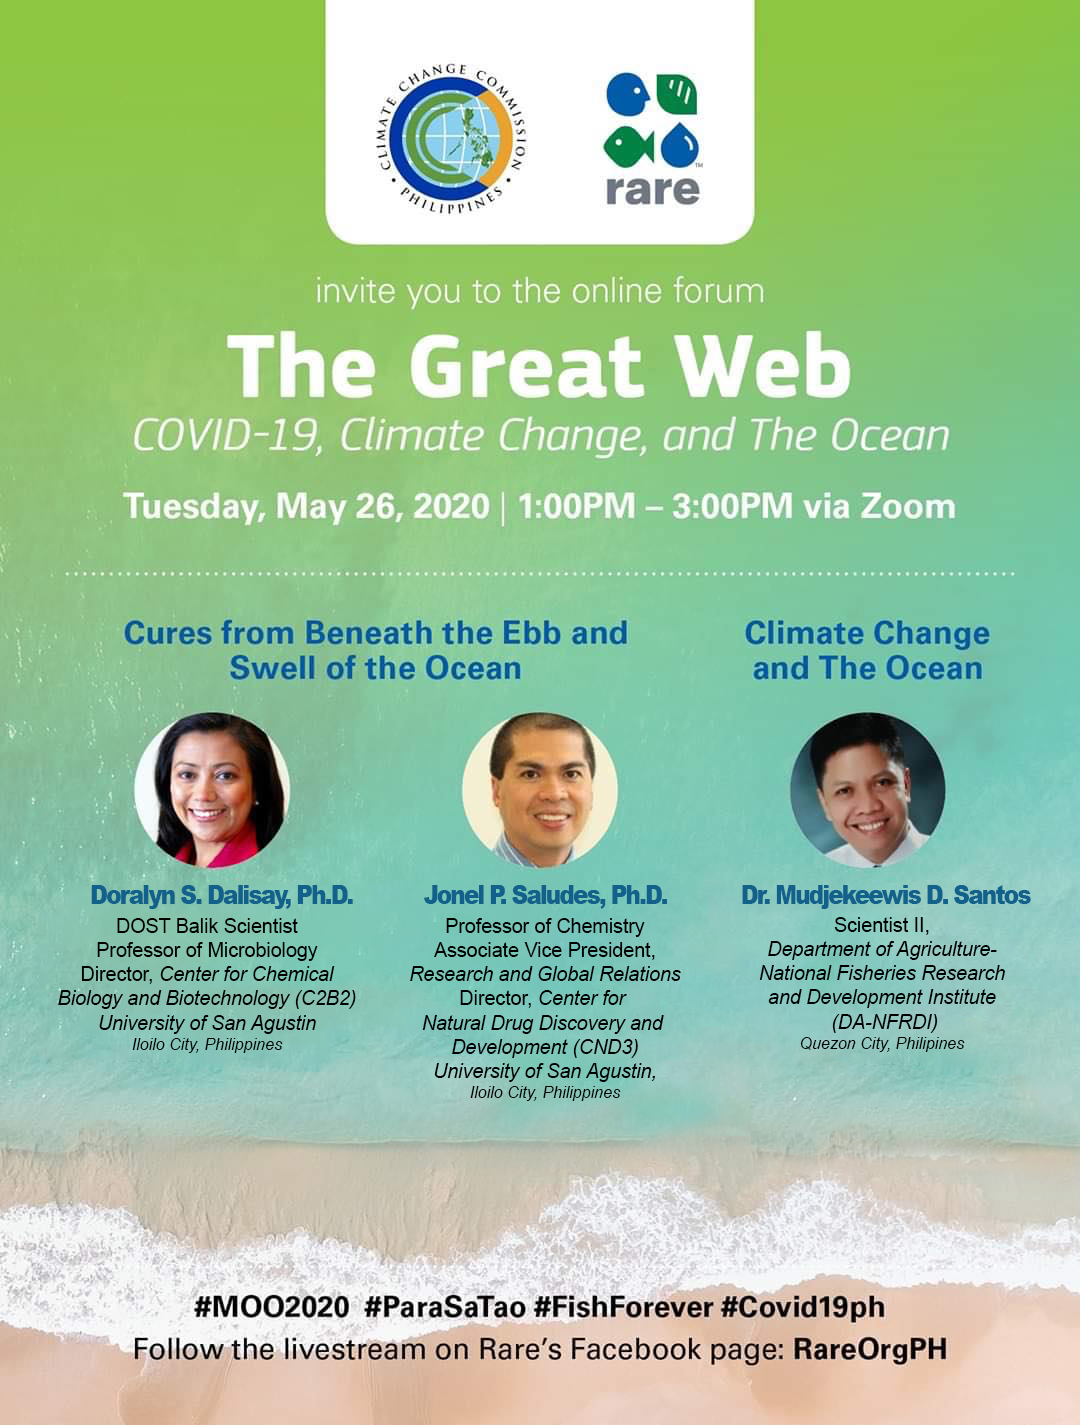 The Great Web: COVID-19, Climate Change, and The Ocean